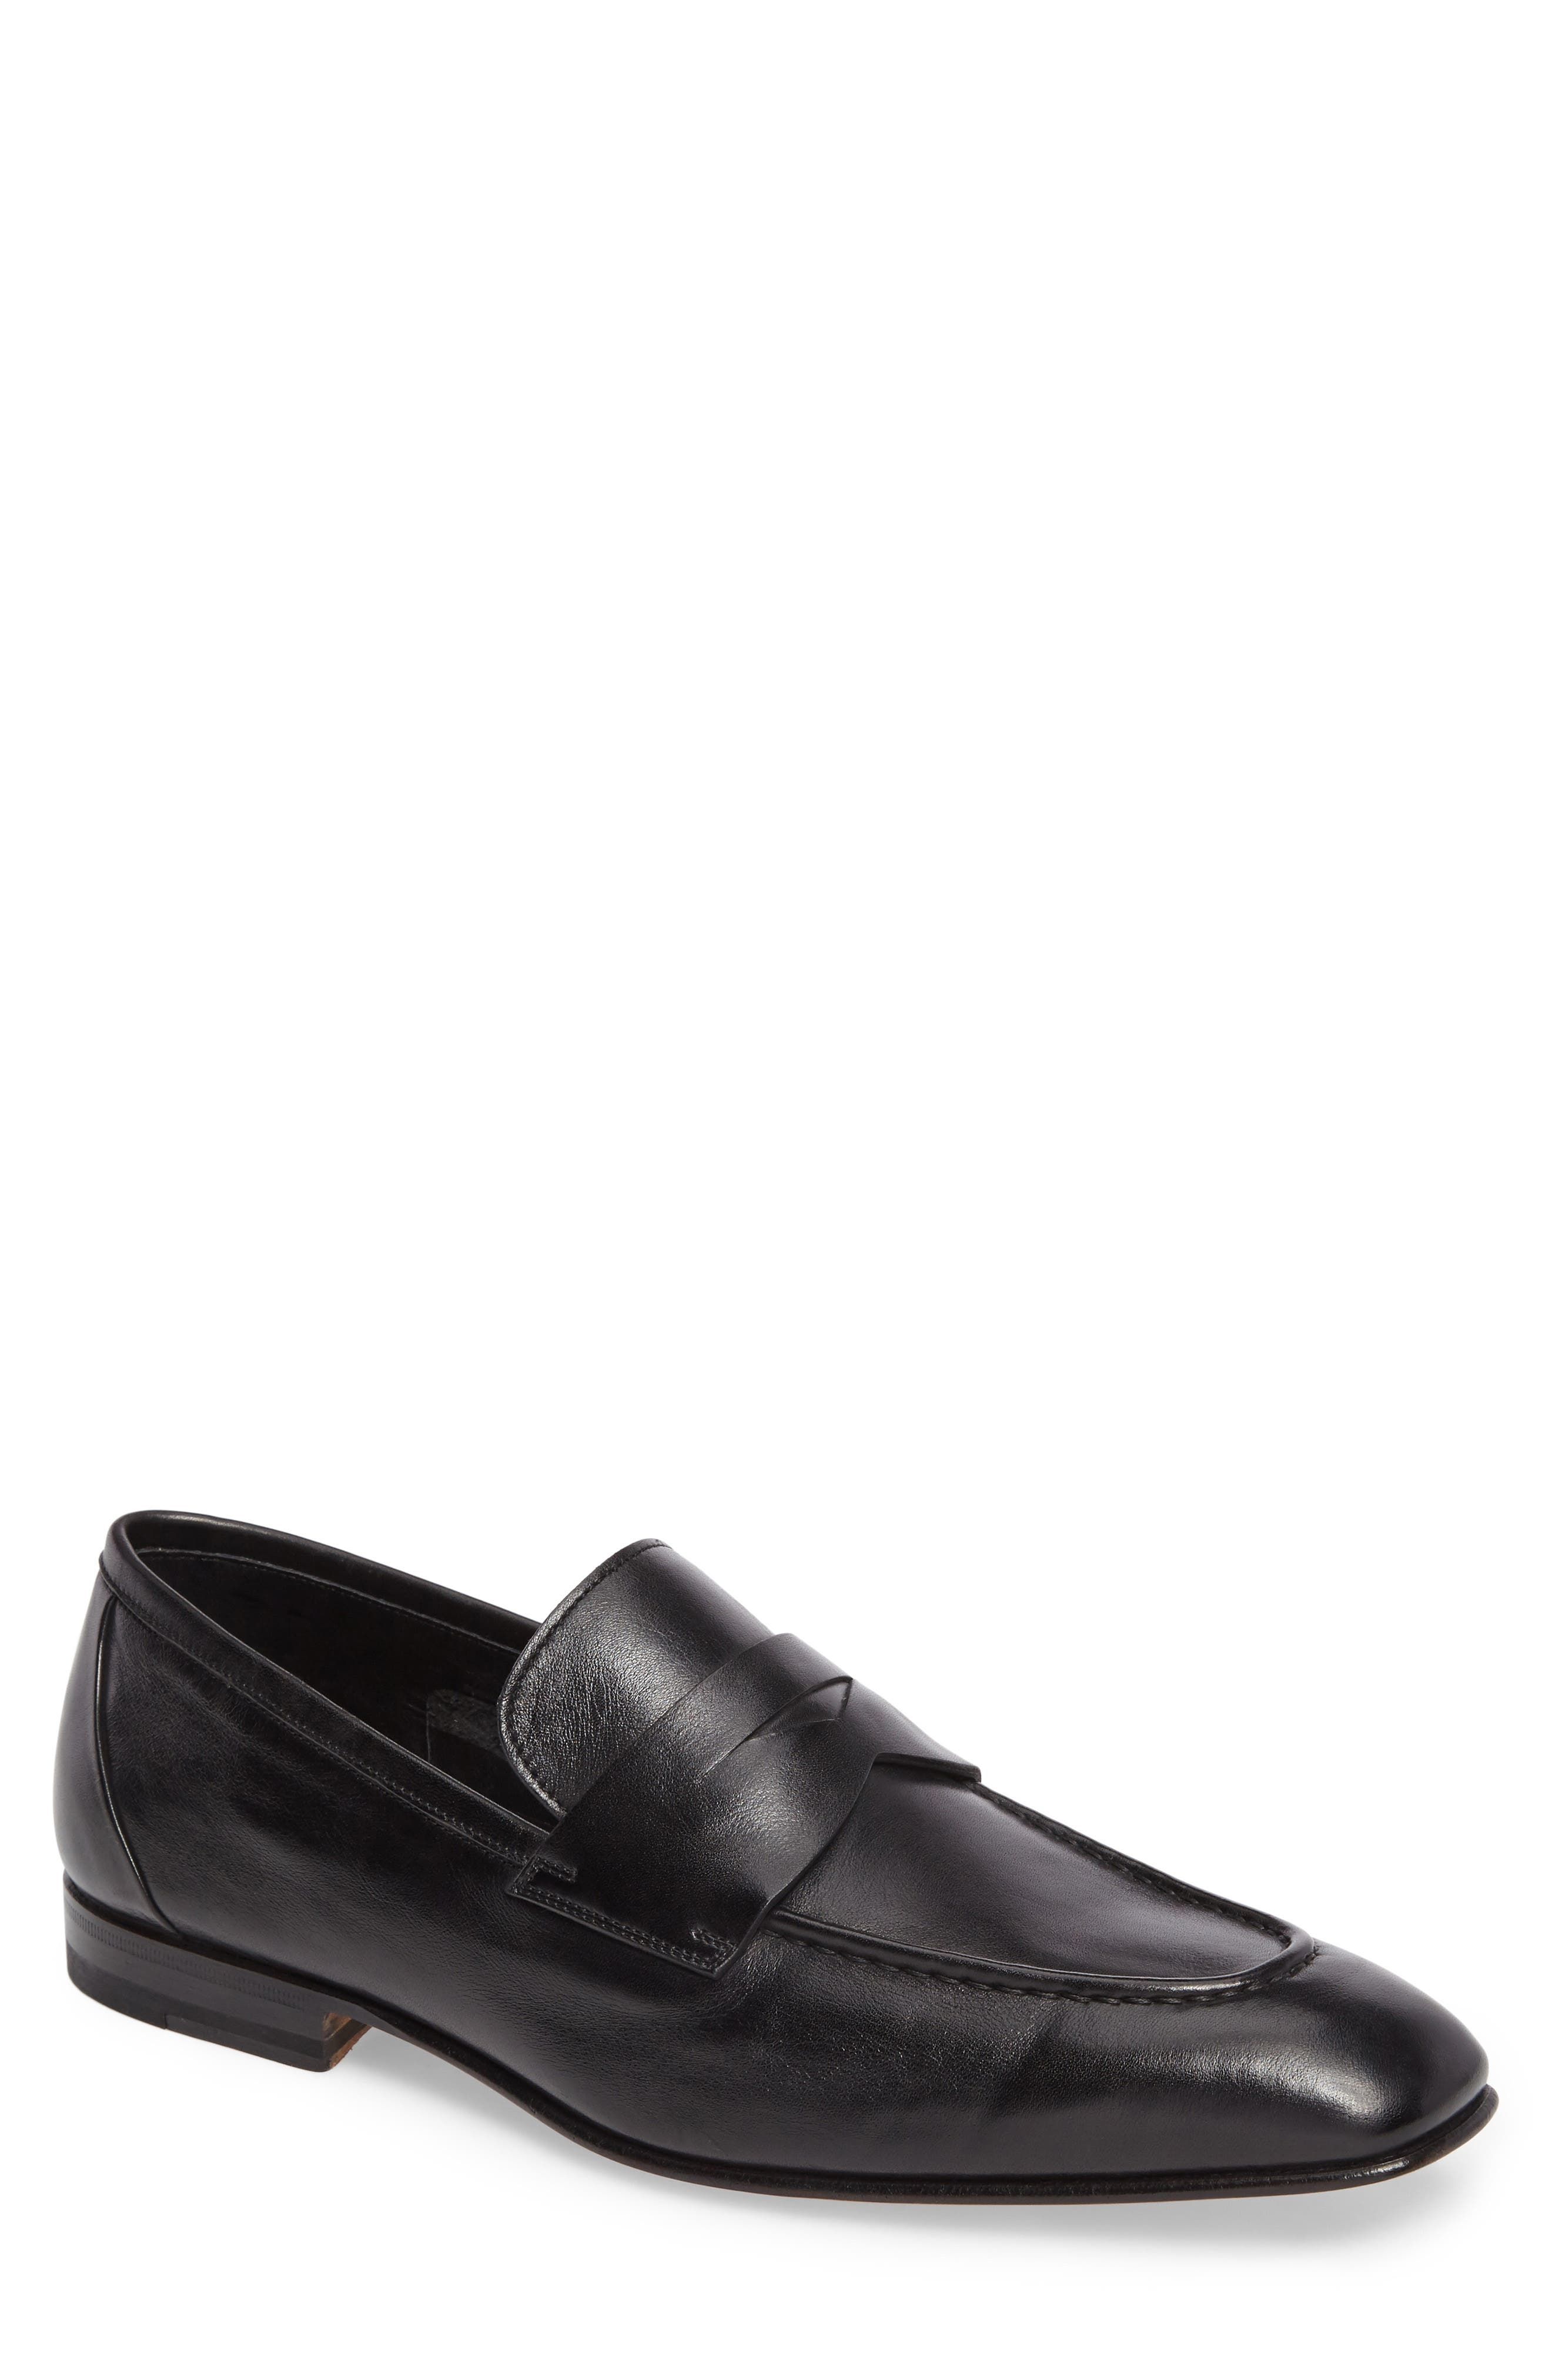 Gannon Penny Loafer,                             Main thumbnail 1, color,                             BLACK